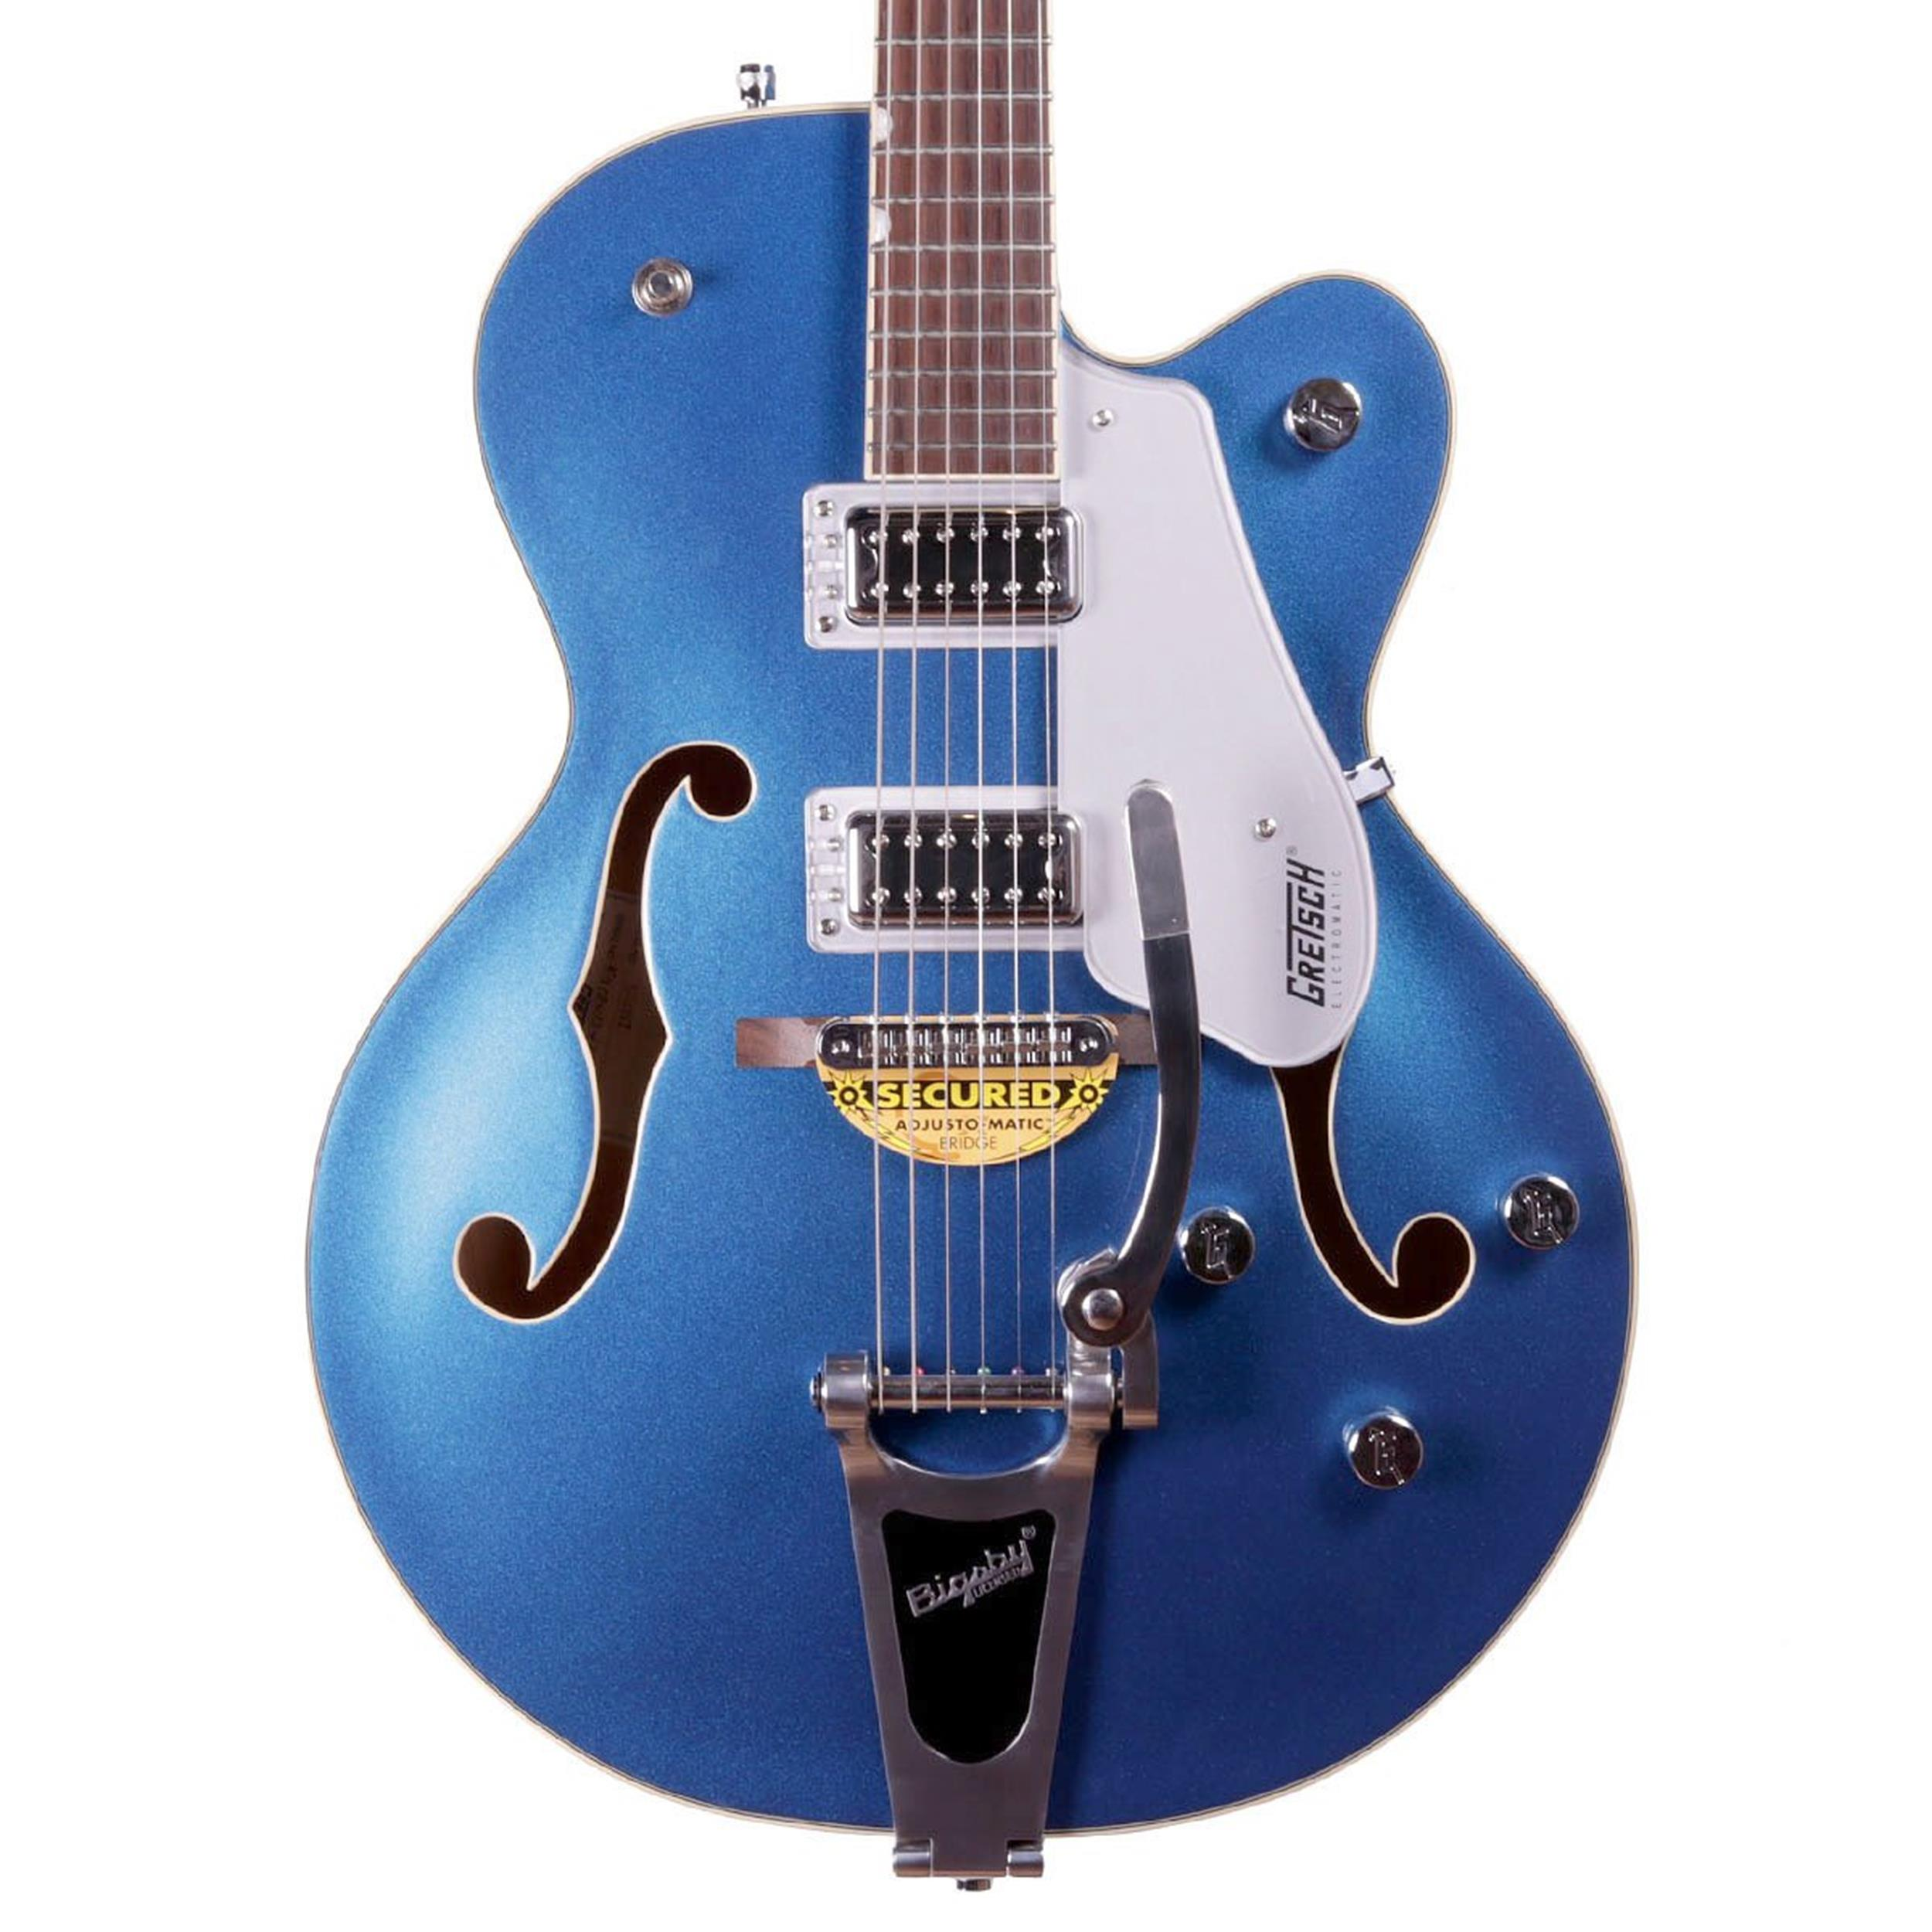 GRETSCH G5420T 2016 ELECTROMATIC HOLLOWBODY FAIRLANE BLUE - 2506011570